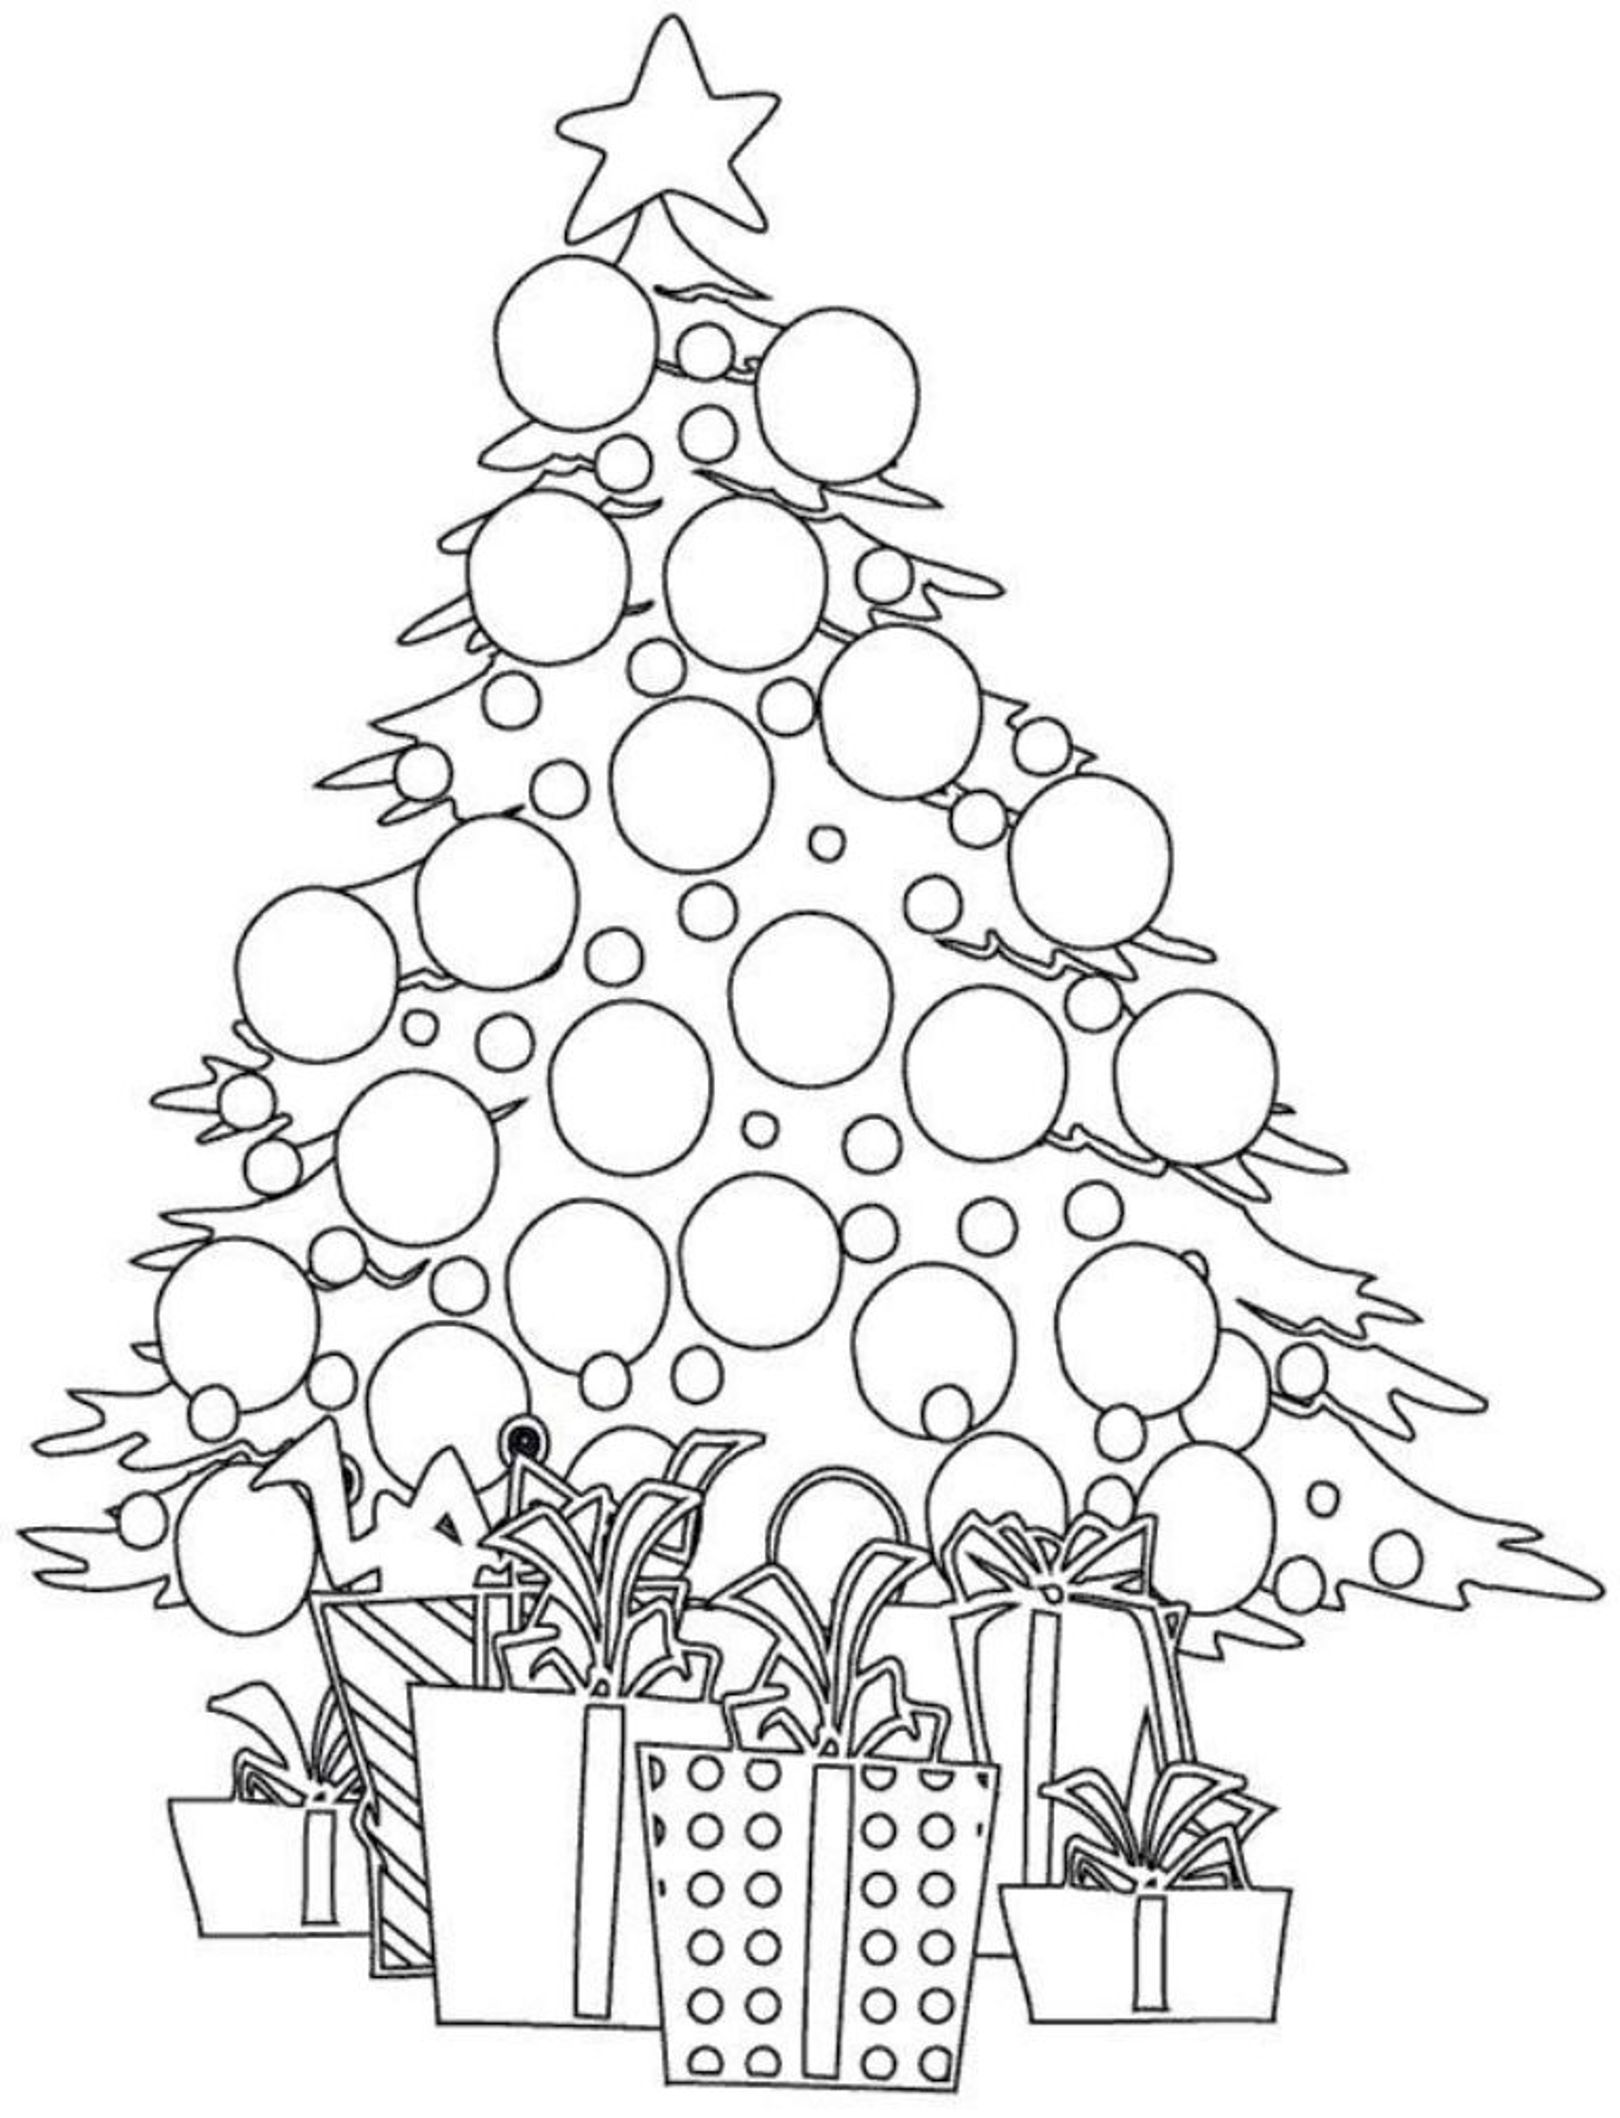 Christmas Tree Coloring Pages With Writing Prompts To Print